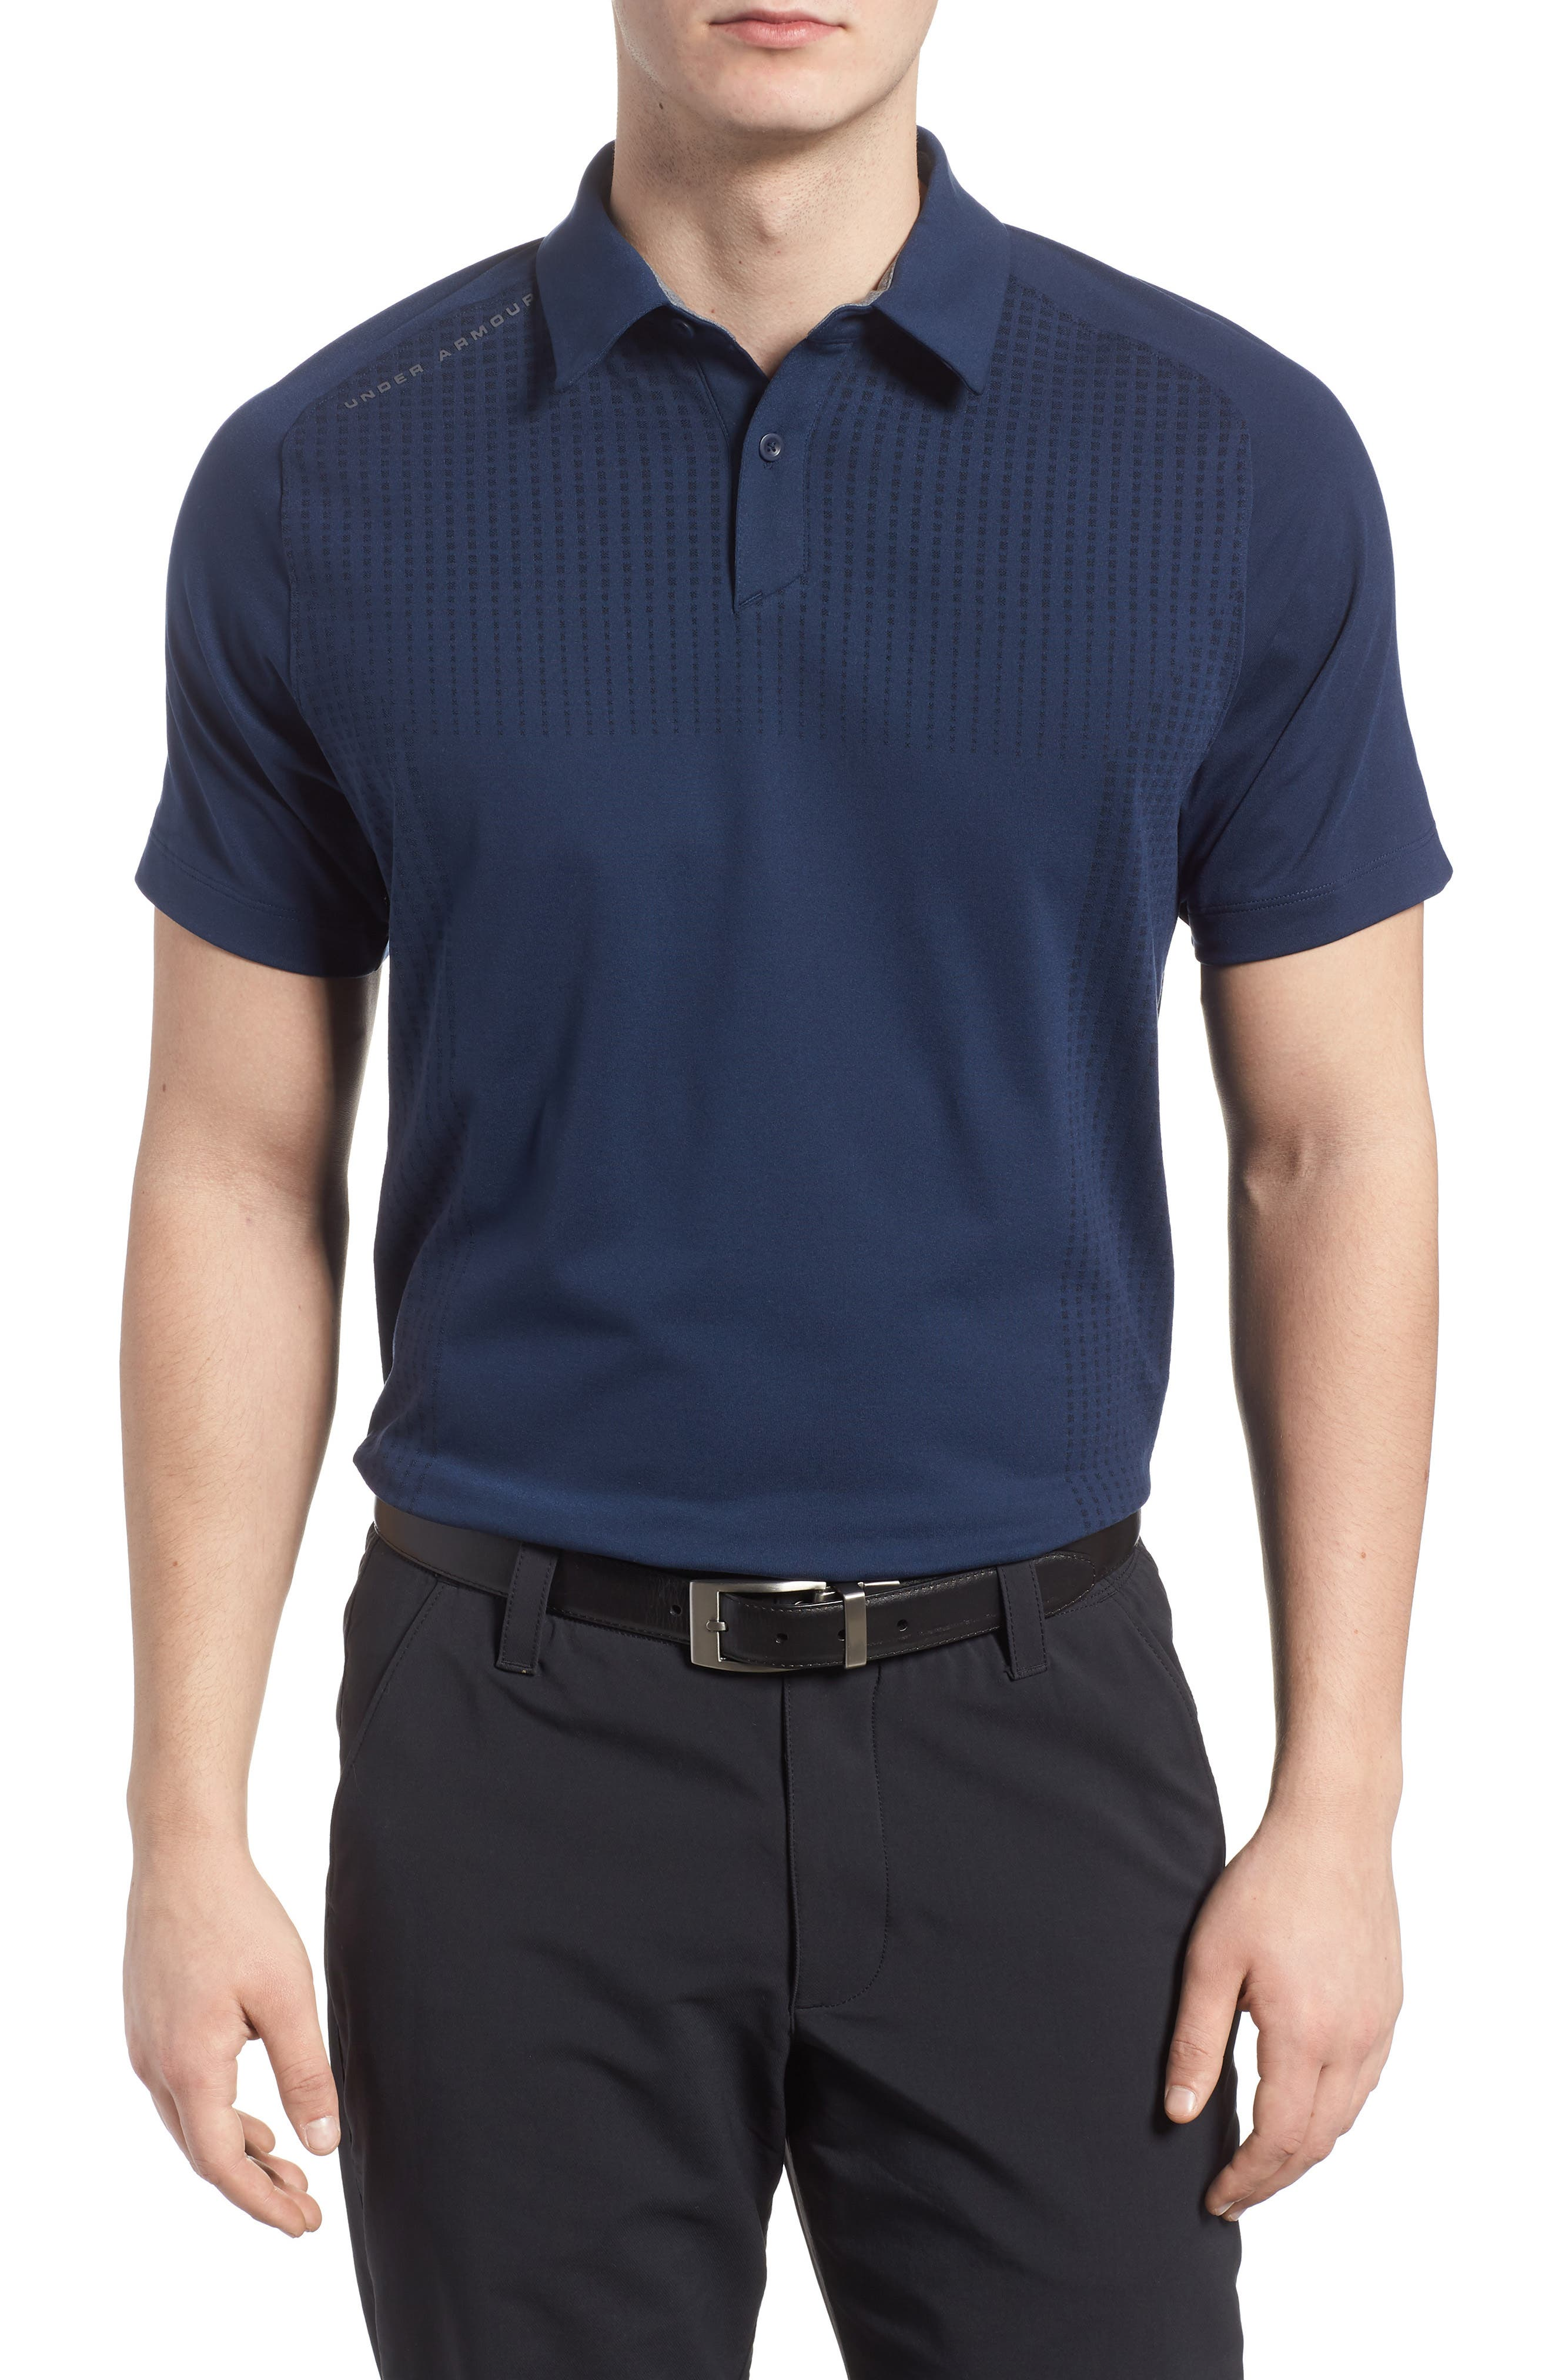 Threadborne Outer Glow Regular Fit Polo Shirt,                             Main thumbnail 1, color,                             408